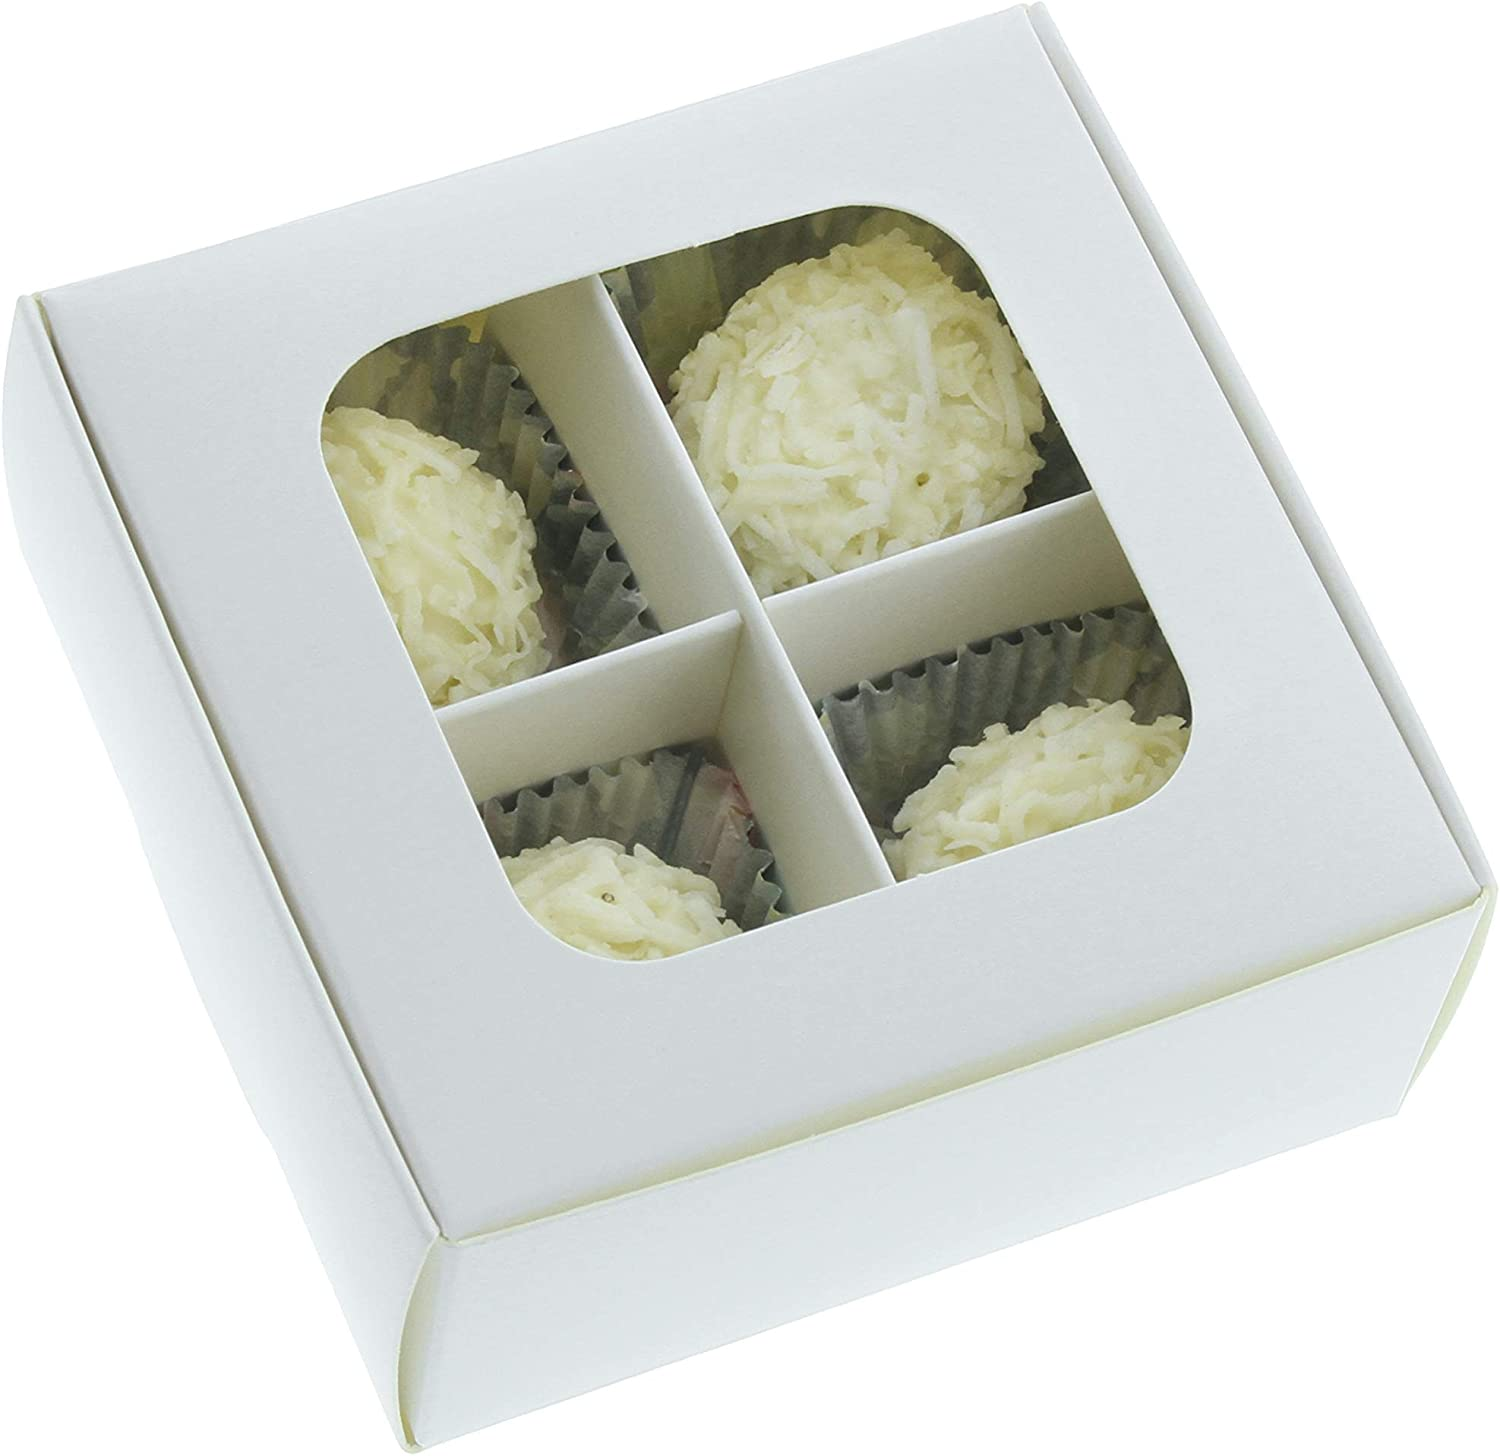 Gretel Mini Treat Boxes with Window and Dividers - Extra Small - Four Compartment Truffle Boxes Packaging for Homemade Chocolates and Candies - 3.5 x 3.5 x 1.57 inches | Pack of 20 (White)